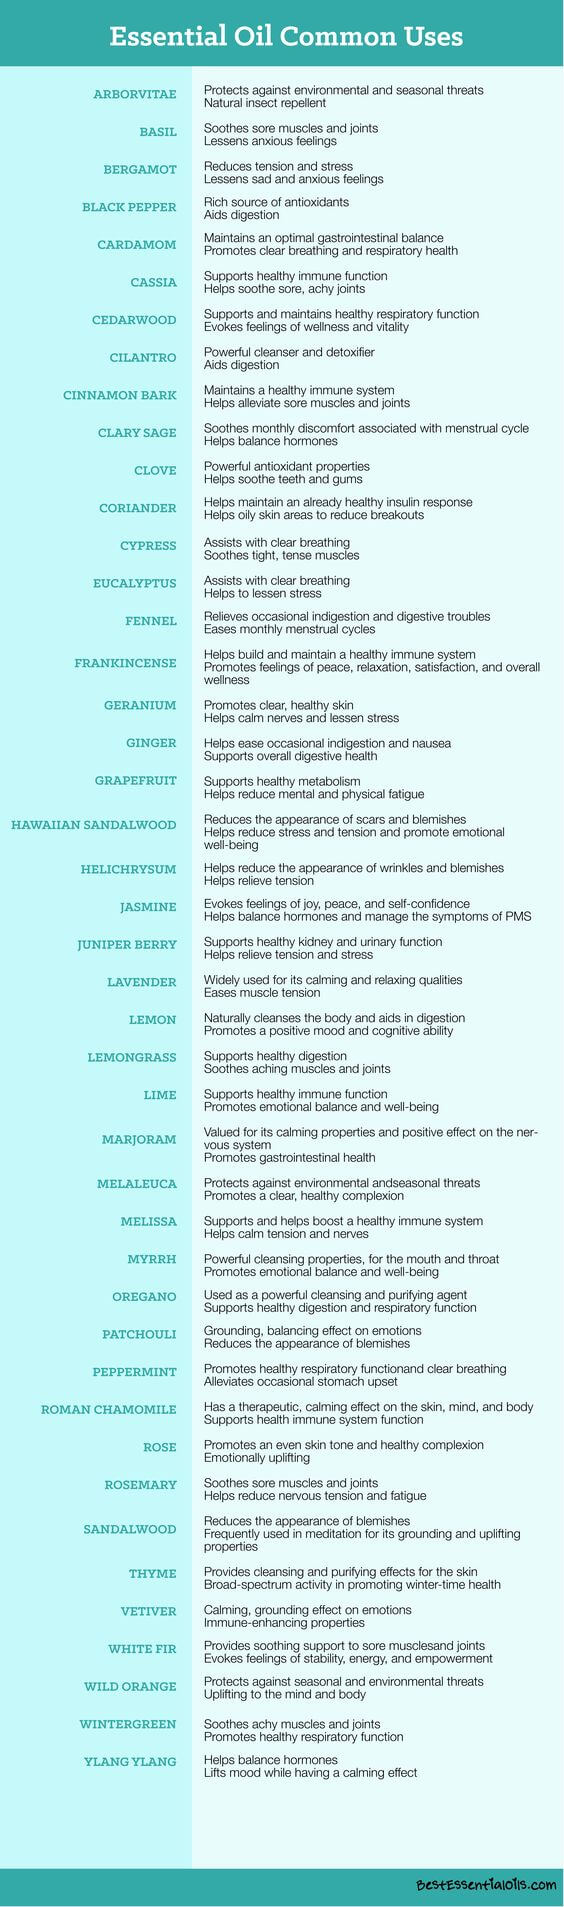 picture regarding Printable List of Essential Oils and Their Uses identify 8 Should-Contain Charts toward Crank out Yourself an Imperative Oil Advisor